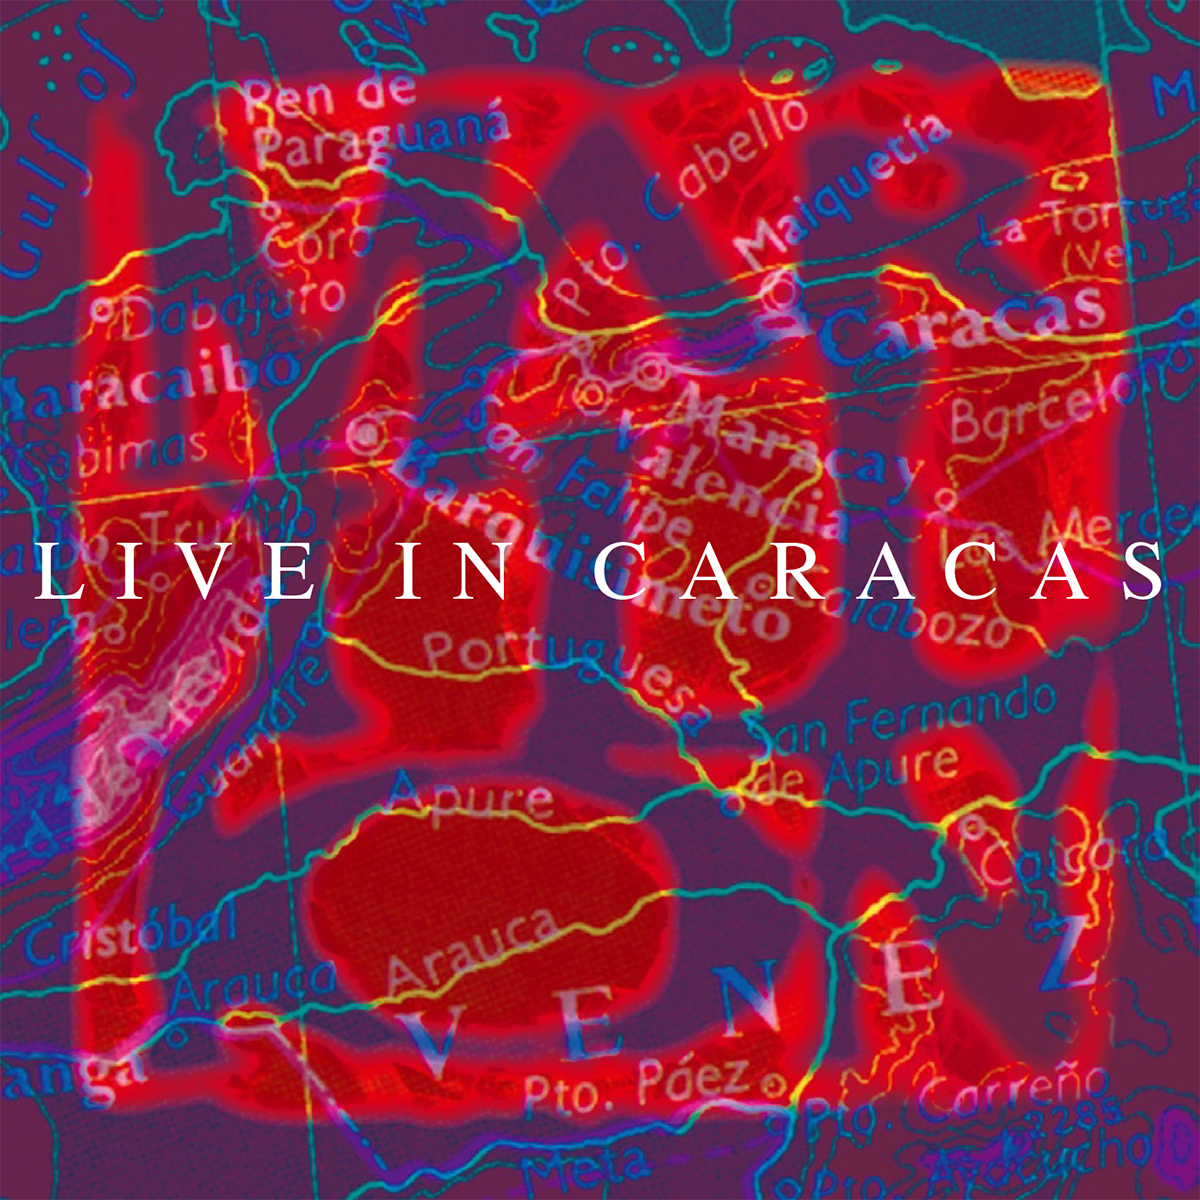 LIVE IN CARACAS 256 KBPS ALBUM DOWNLOAD